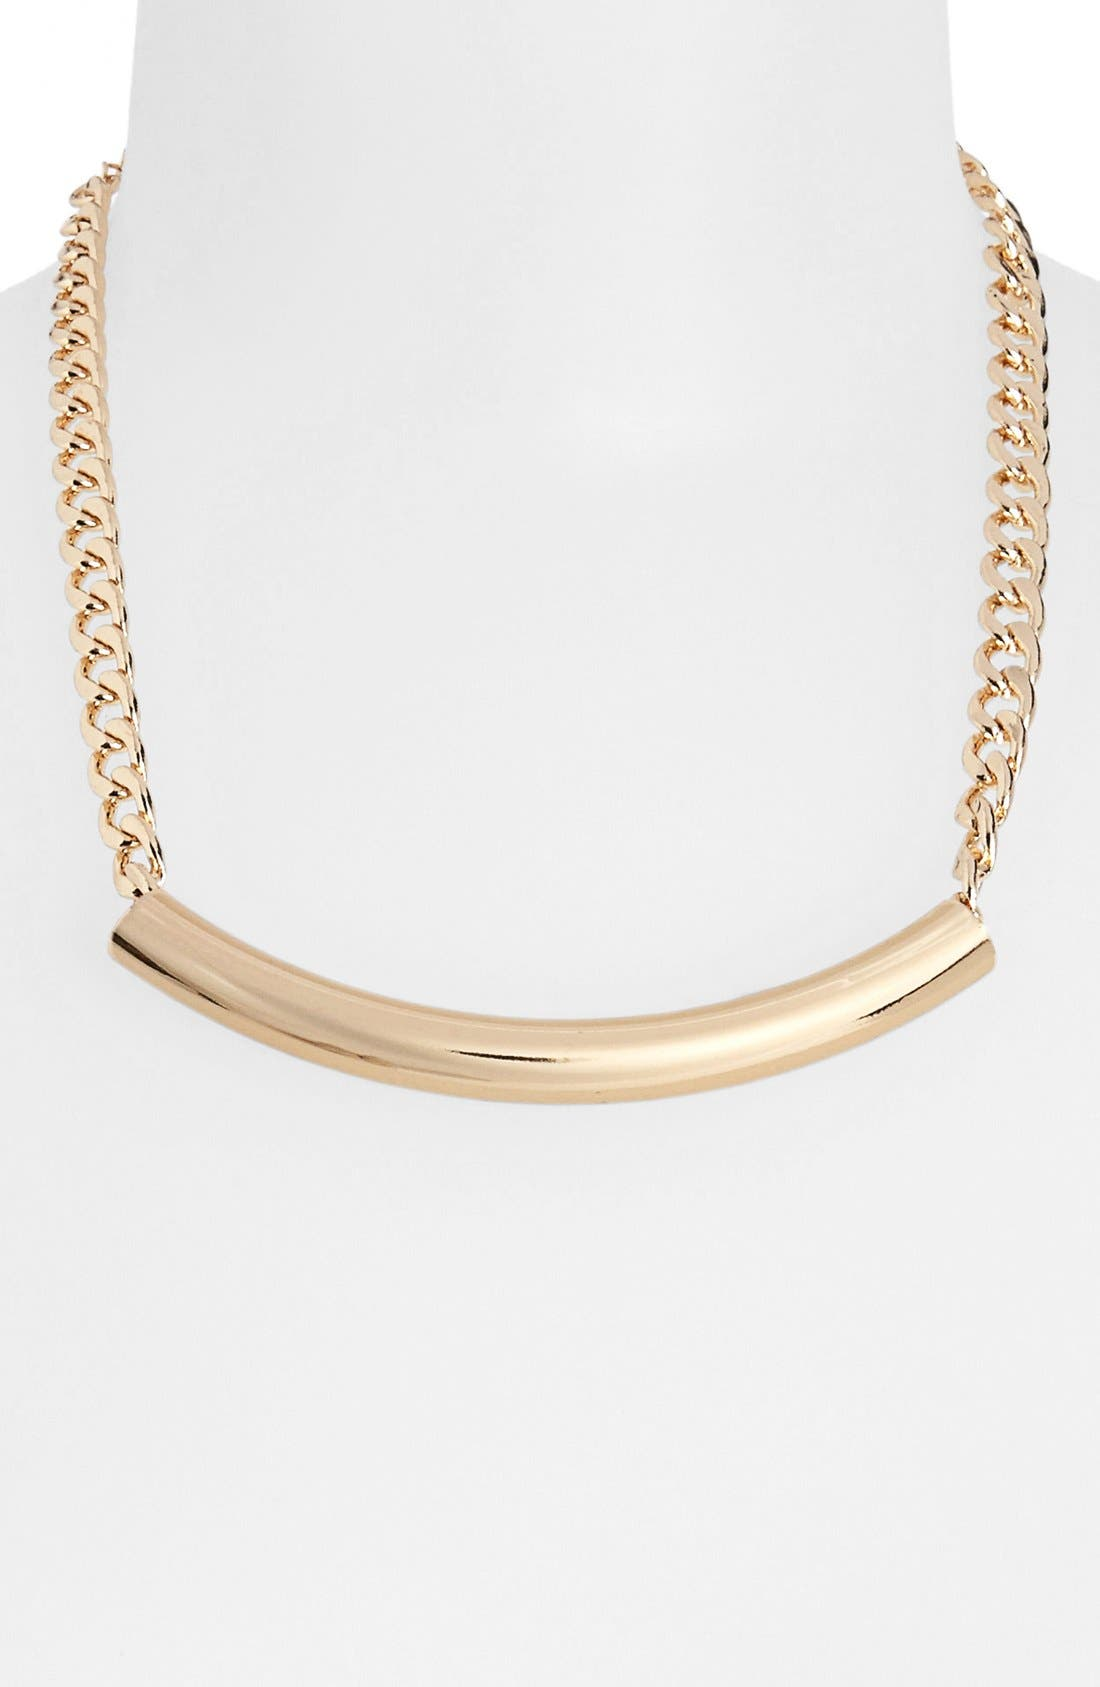 Alternate Image 1 Selected - Topshop Removable Tube Chain Necklace